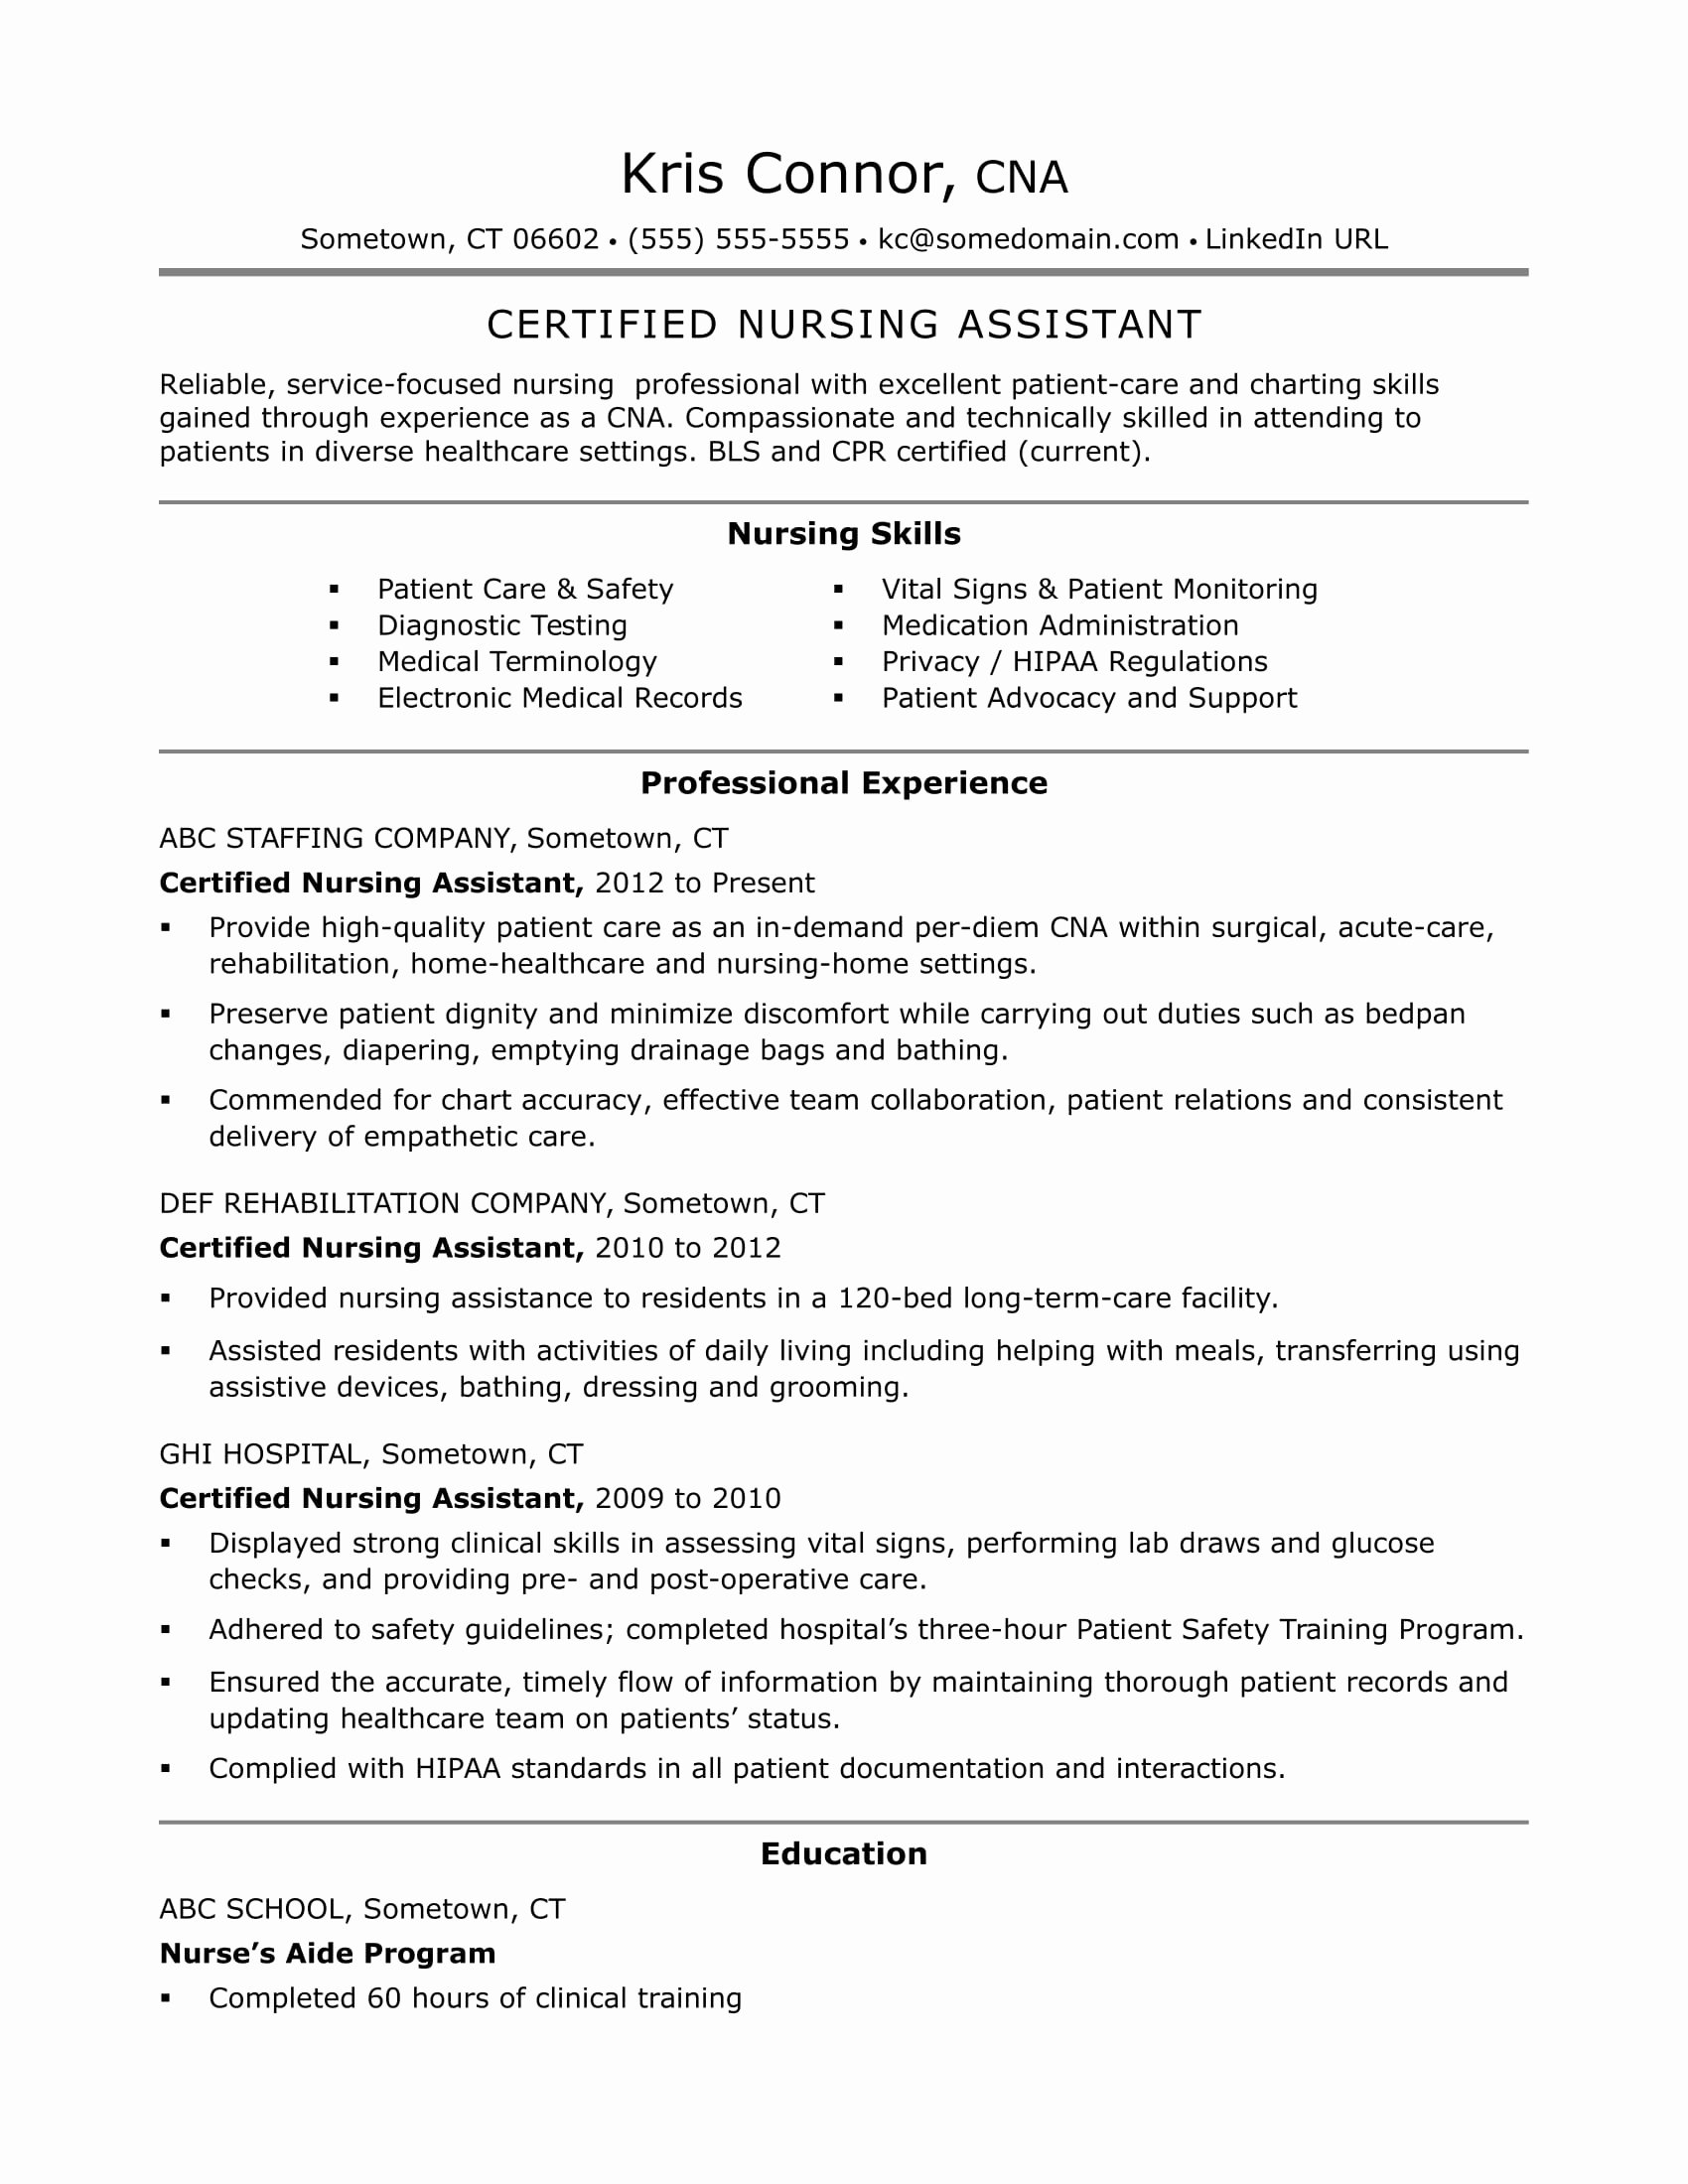 Resumes for Cna Position Elegant Cna Resume Examples Skills for Cnas